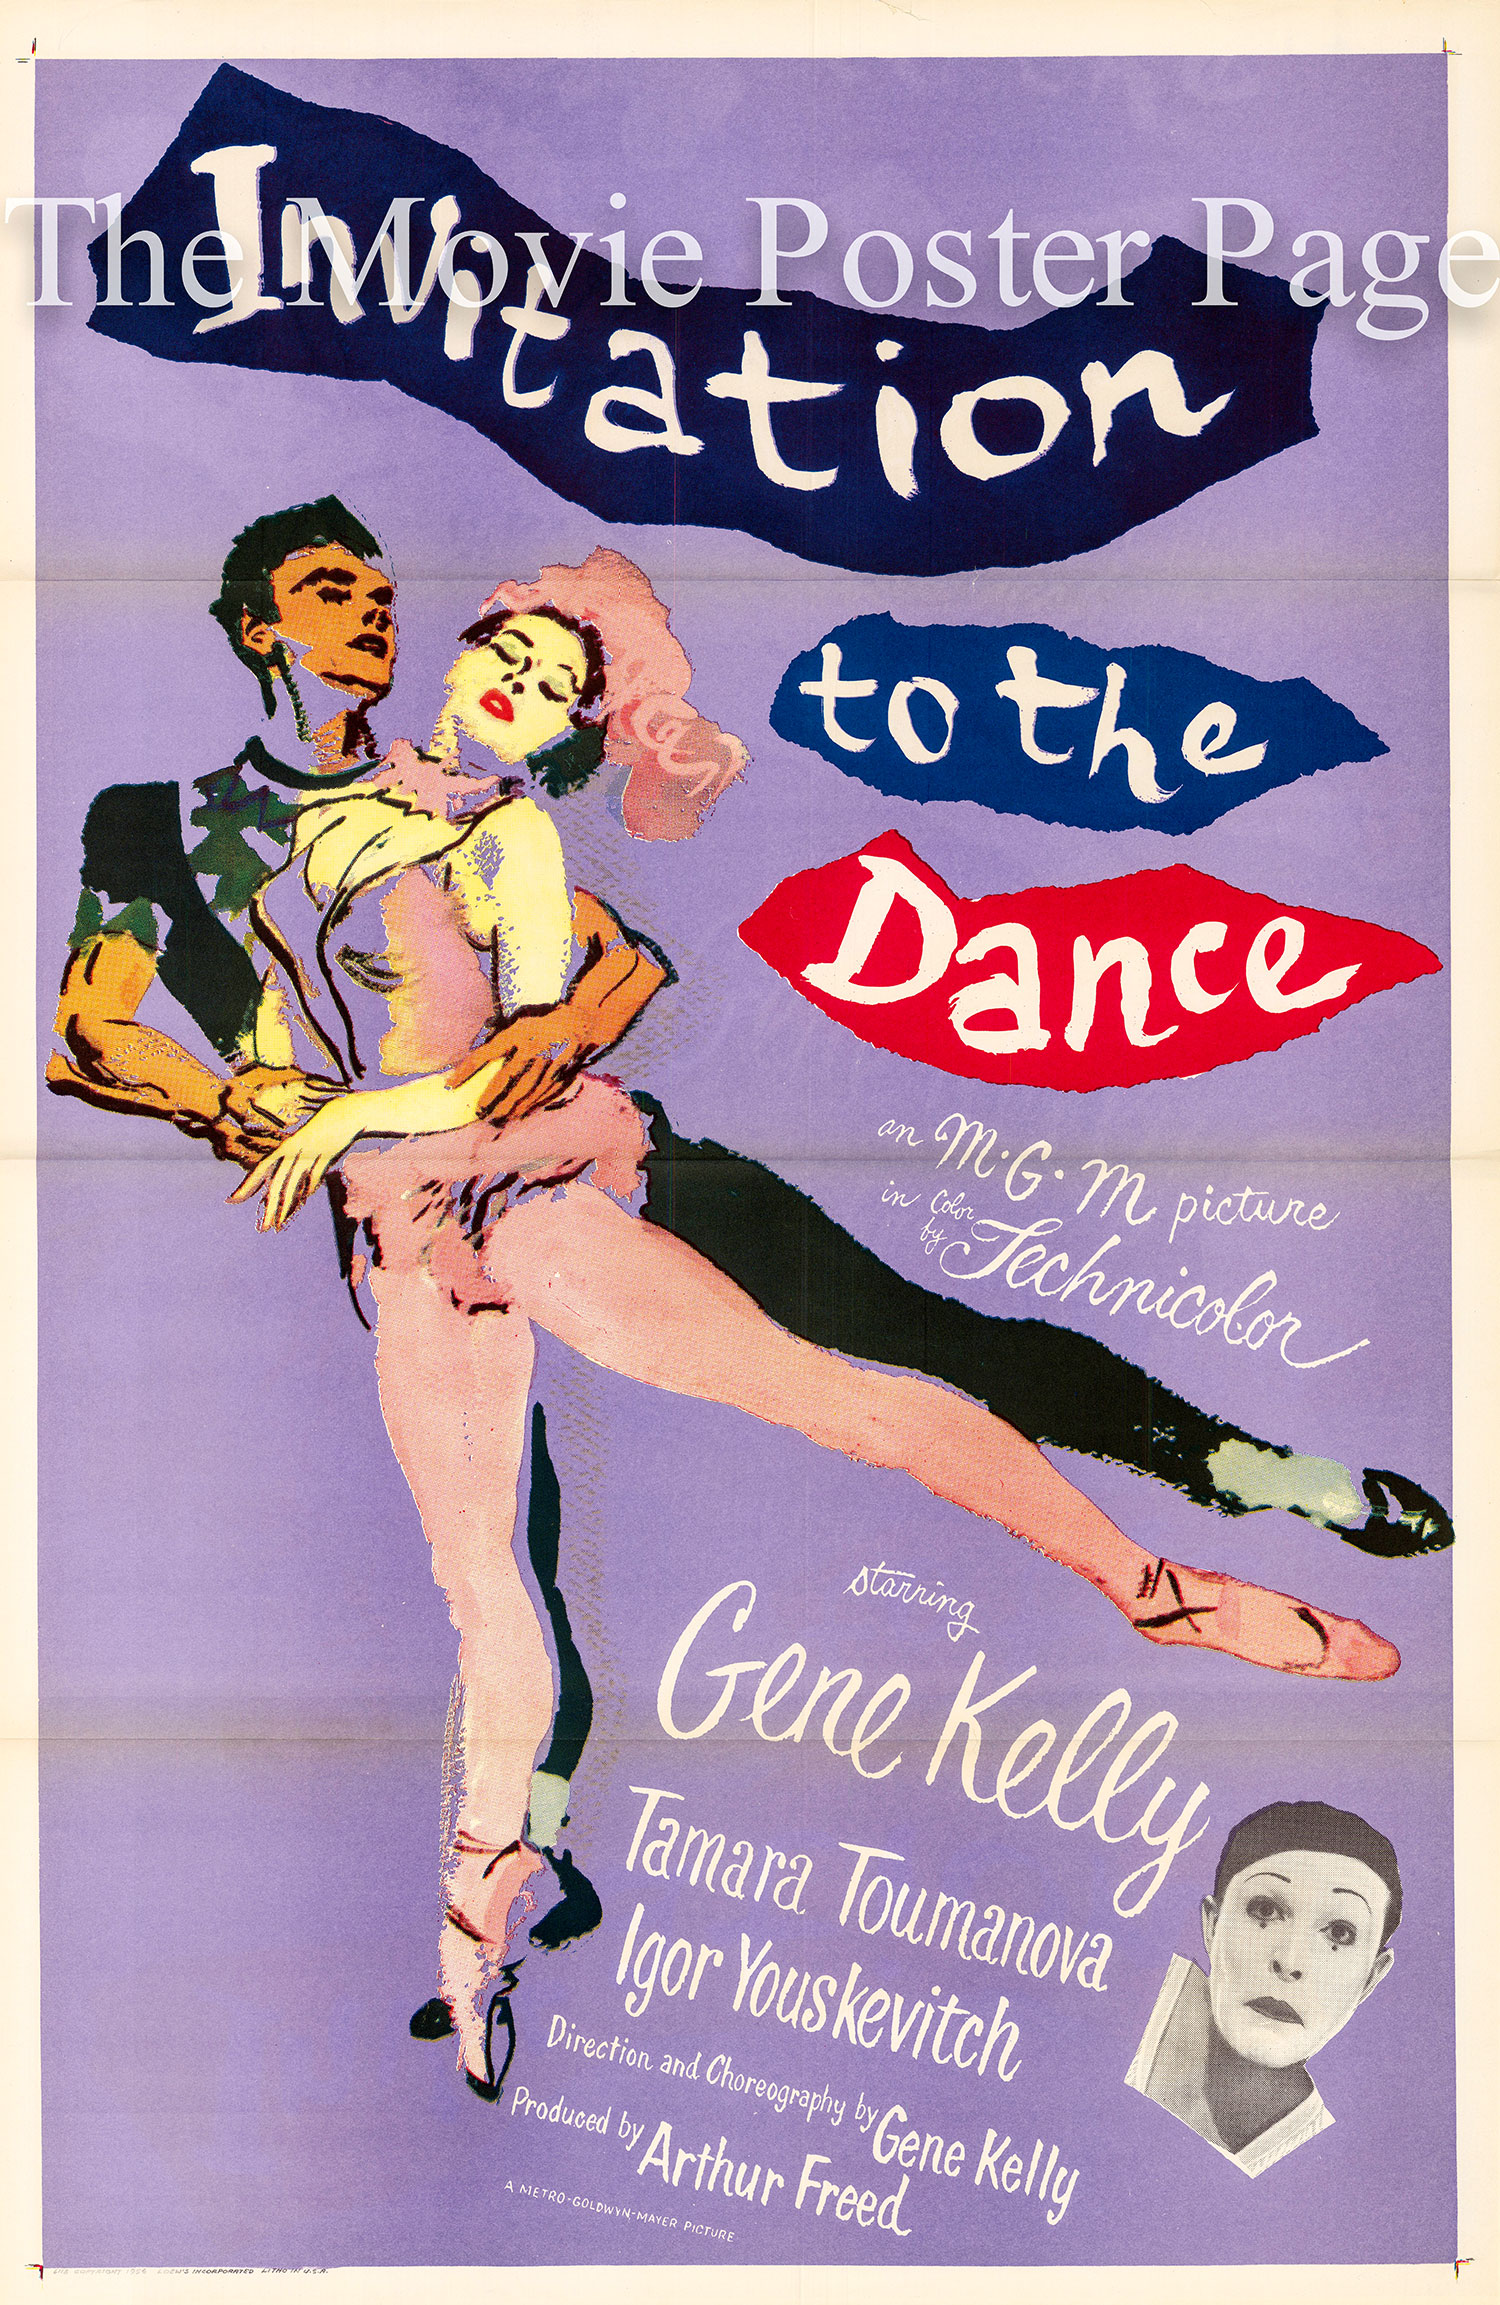 Pictured is a US promotional poster for the 1956 Gene Kelly film Invitation to the Dance starring Gene Kelly as the star dancer in three different stories.